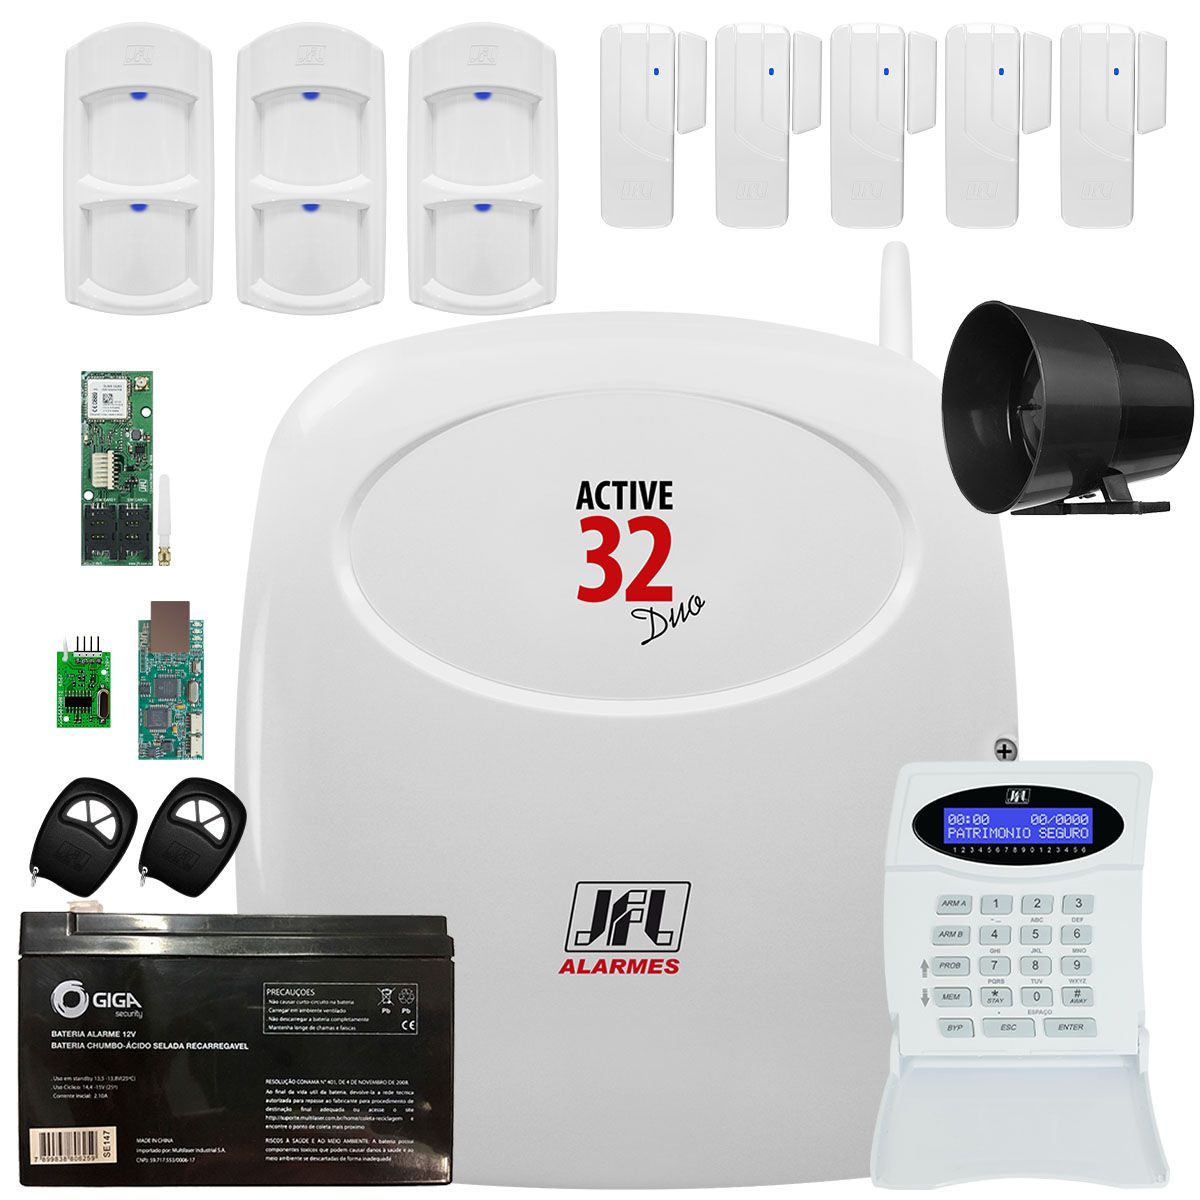 Kit Alarme Active 32 Duo Sensores Ird 650 E Sl 220 Duo Jfl